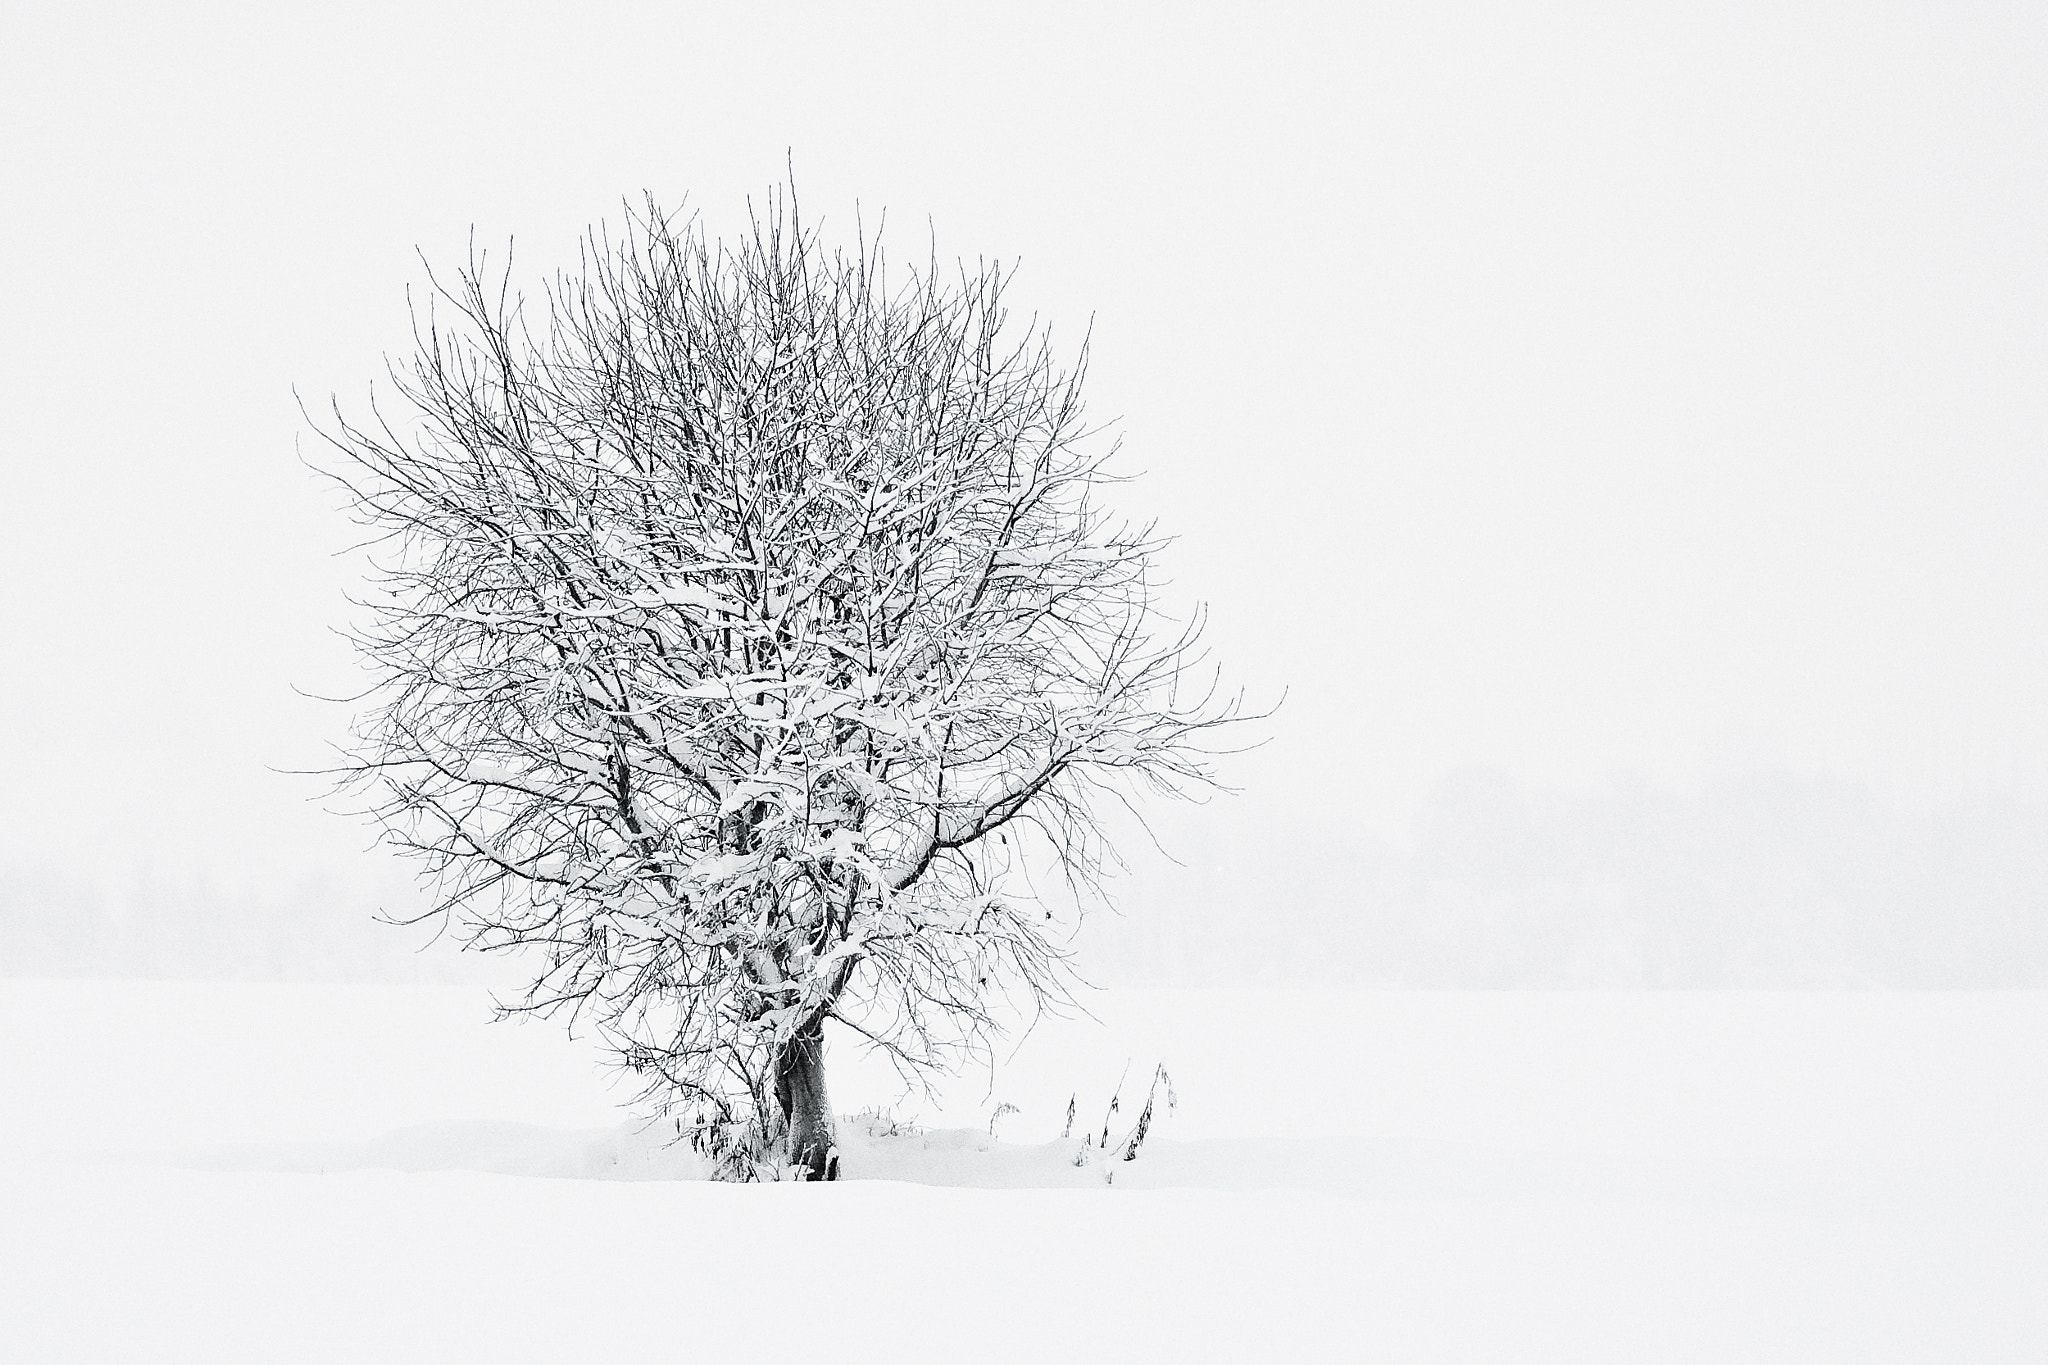 Photograph Winter is coming by Kolbein Svensson on 500px